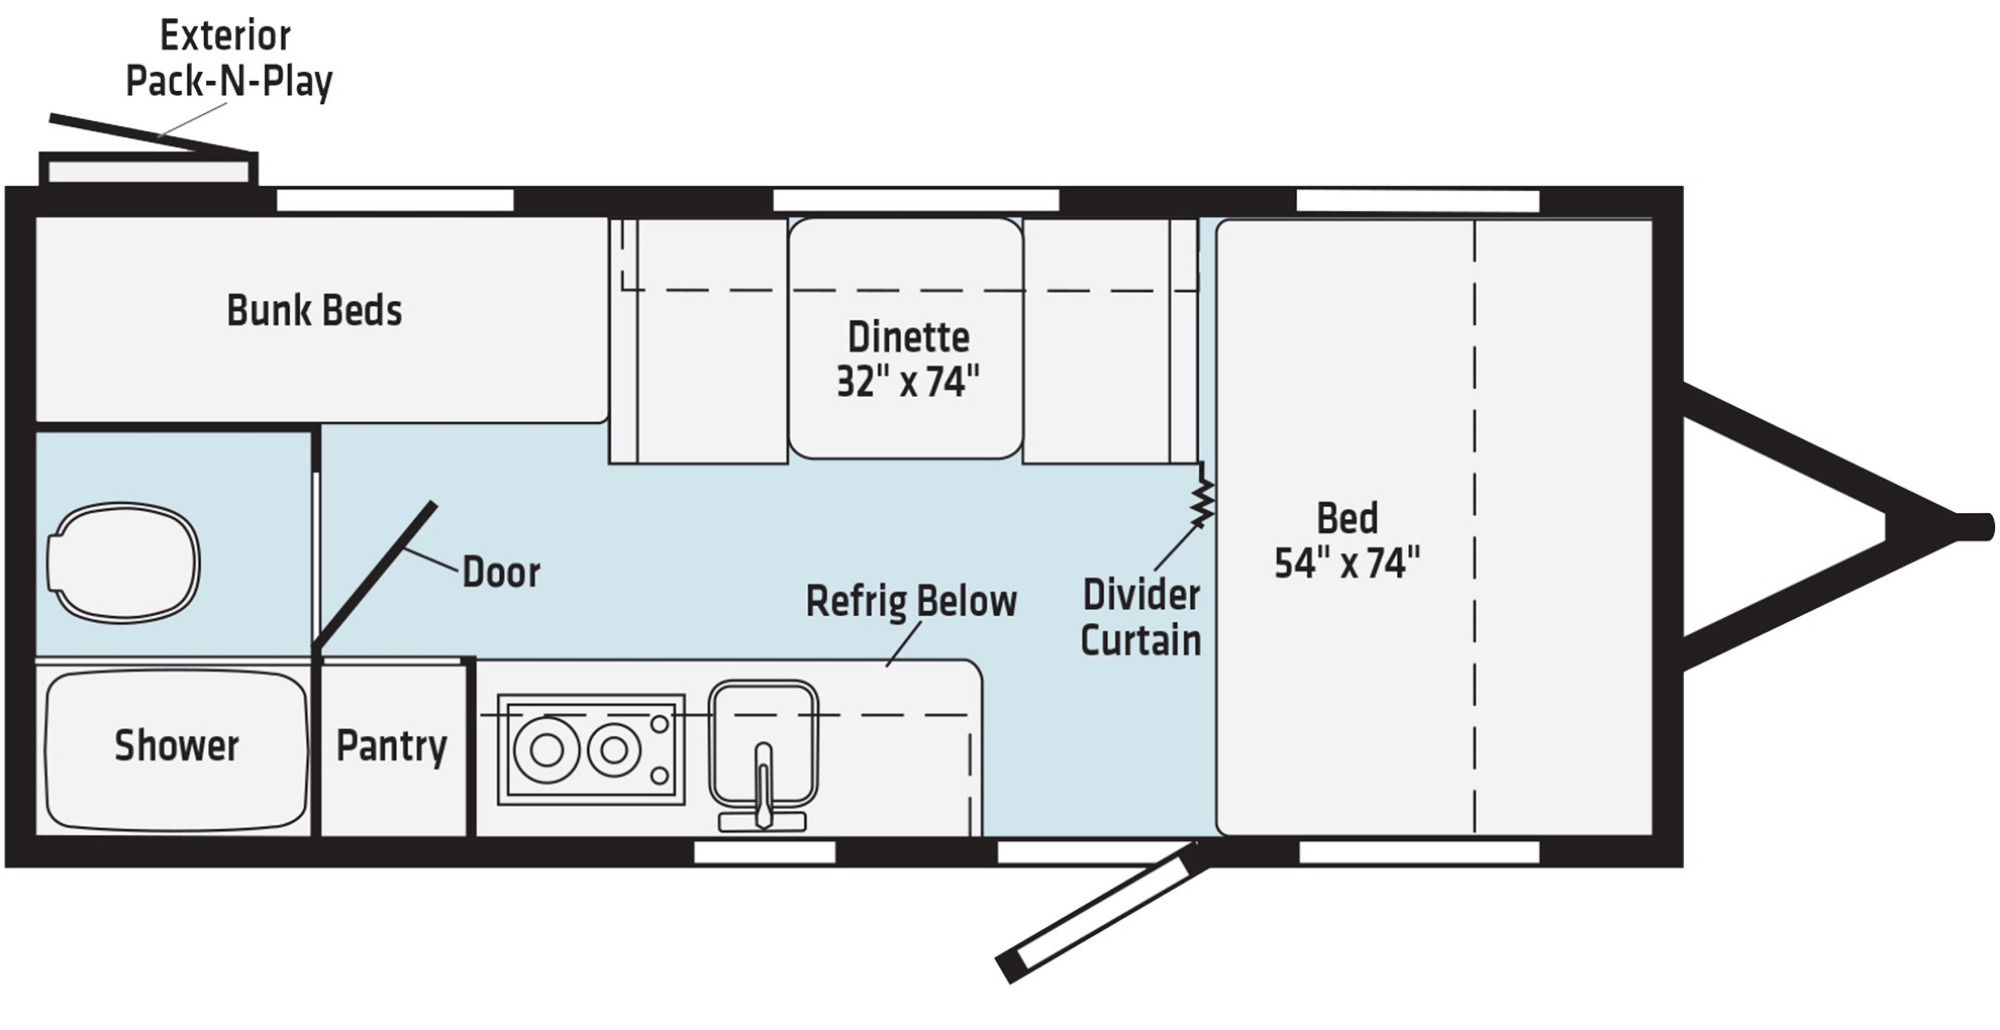 View Floor Plan for 2021 WINNEBAGO MICRO MINNIE 1700BH